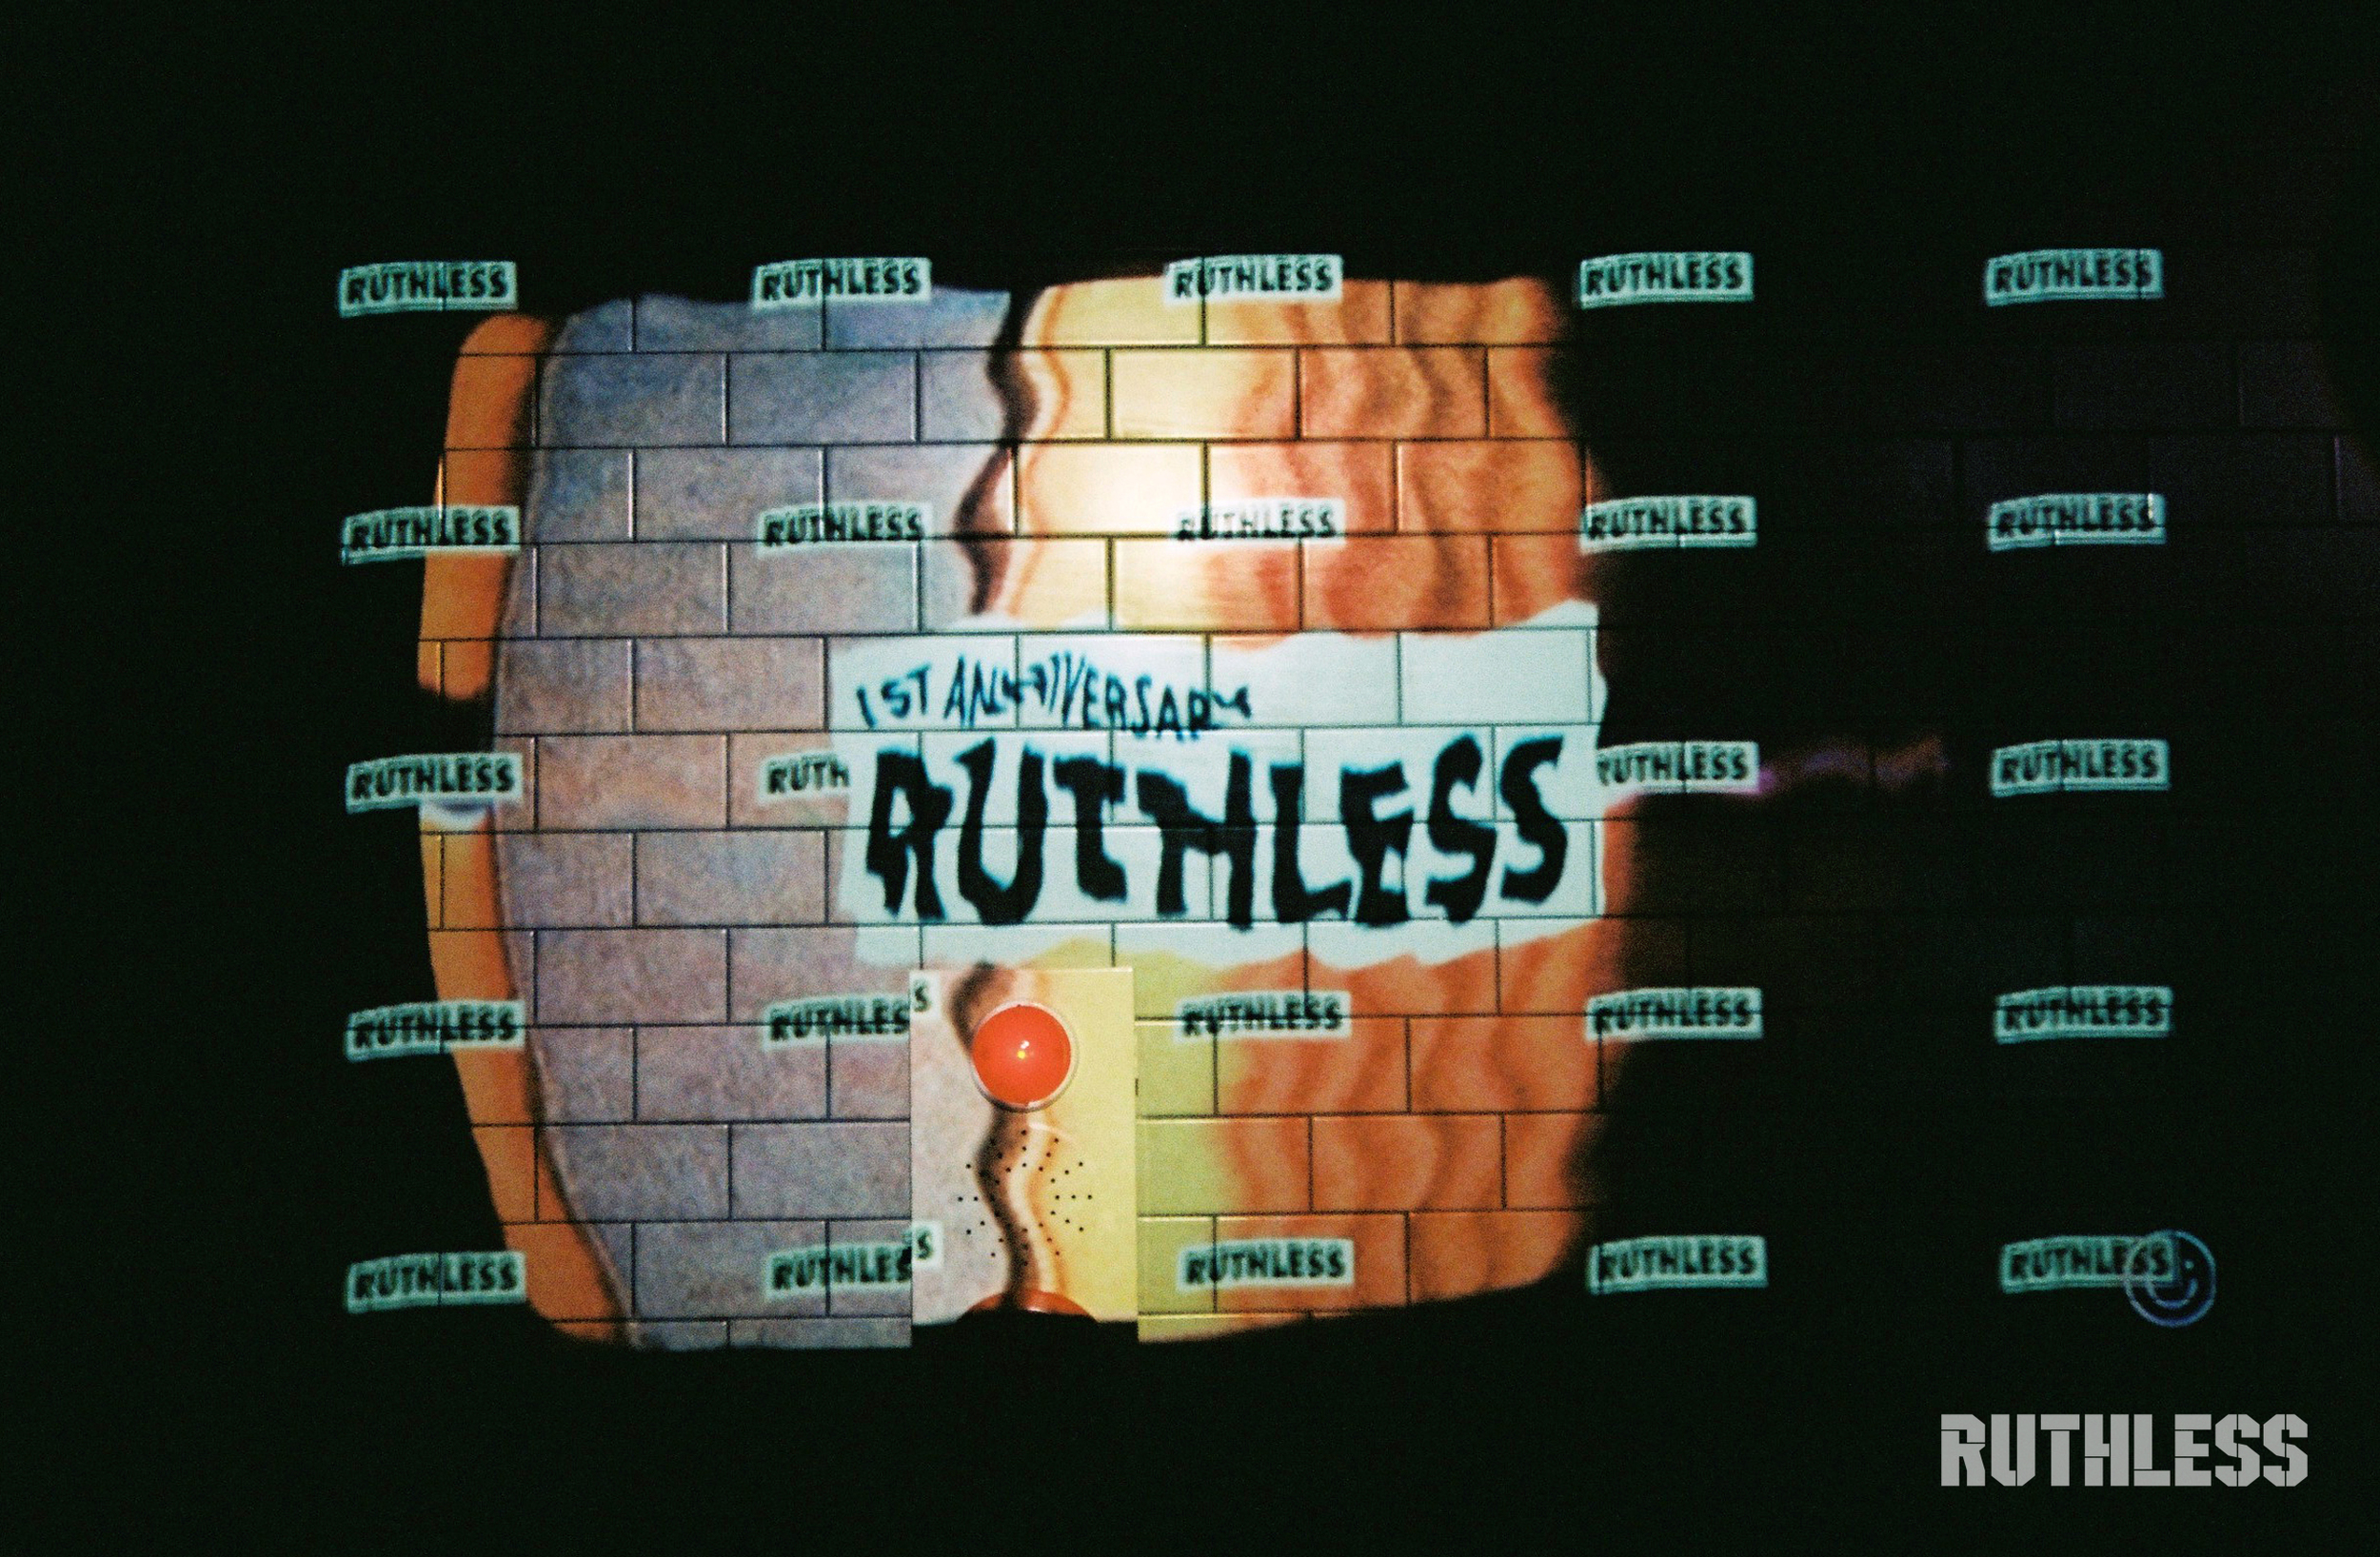 ruthless_party_006.jpg